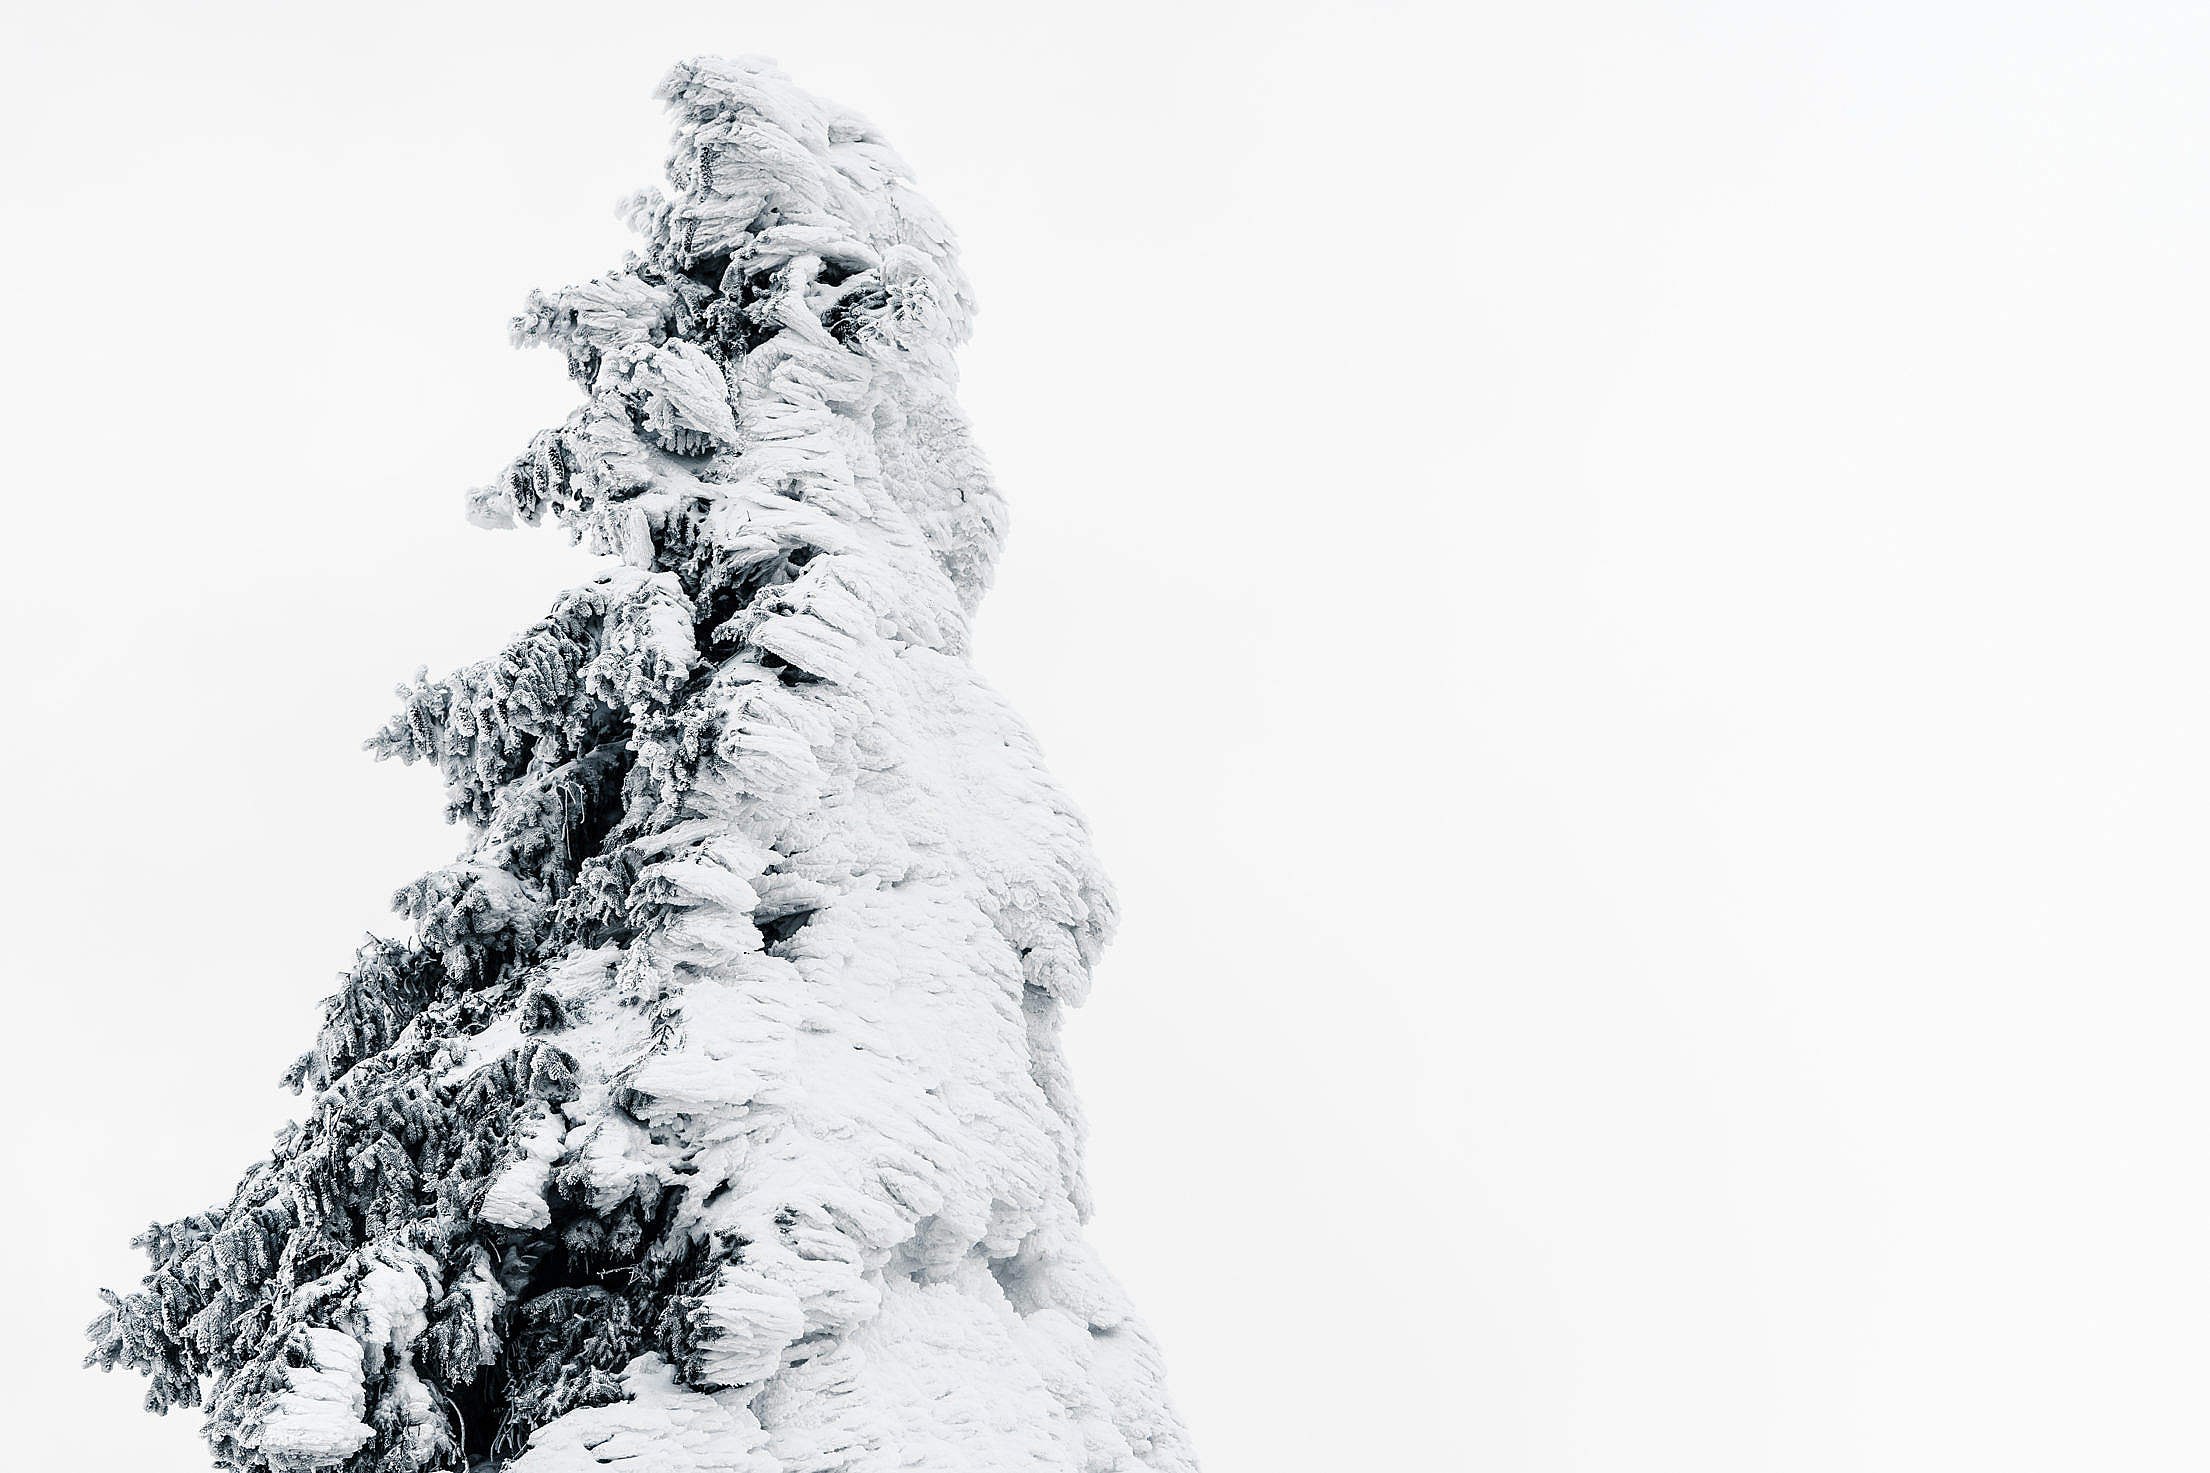 Tree Covered with Snow Free Stock Photo